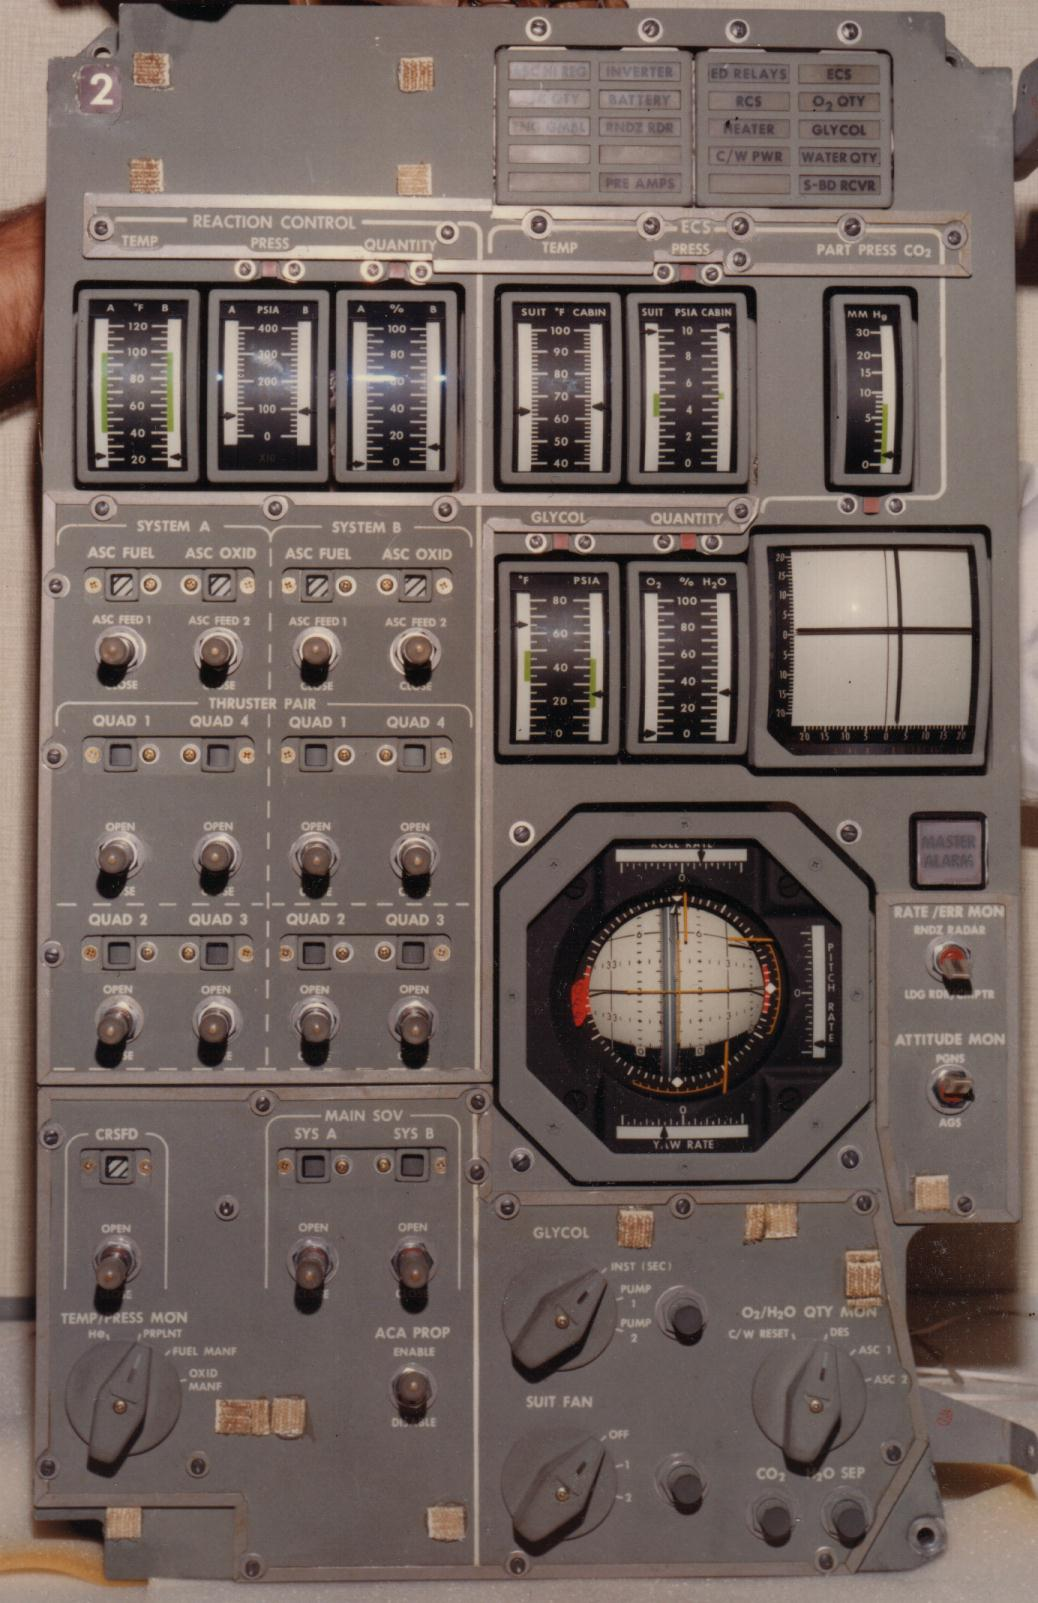 Print Page Integration Of The New Csm And Lm Panel Graphics 2006 Commander With A Dome Light Circuit Issuefuse Panelswitches